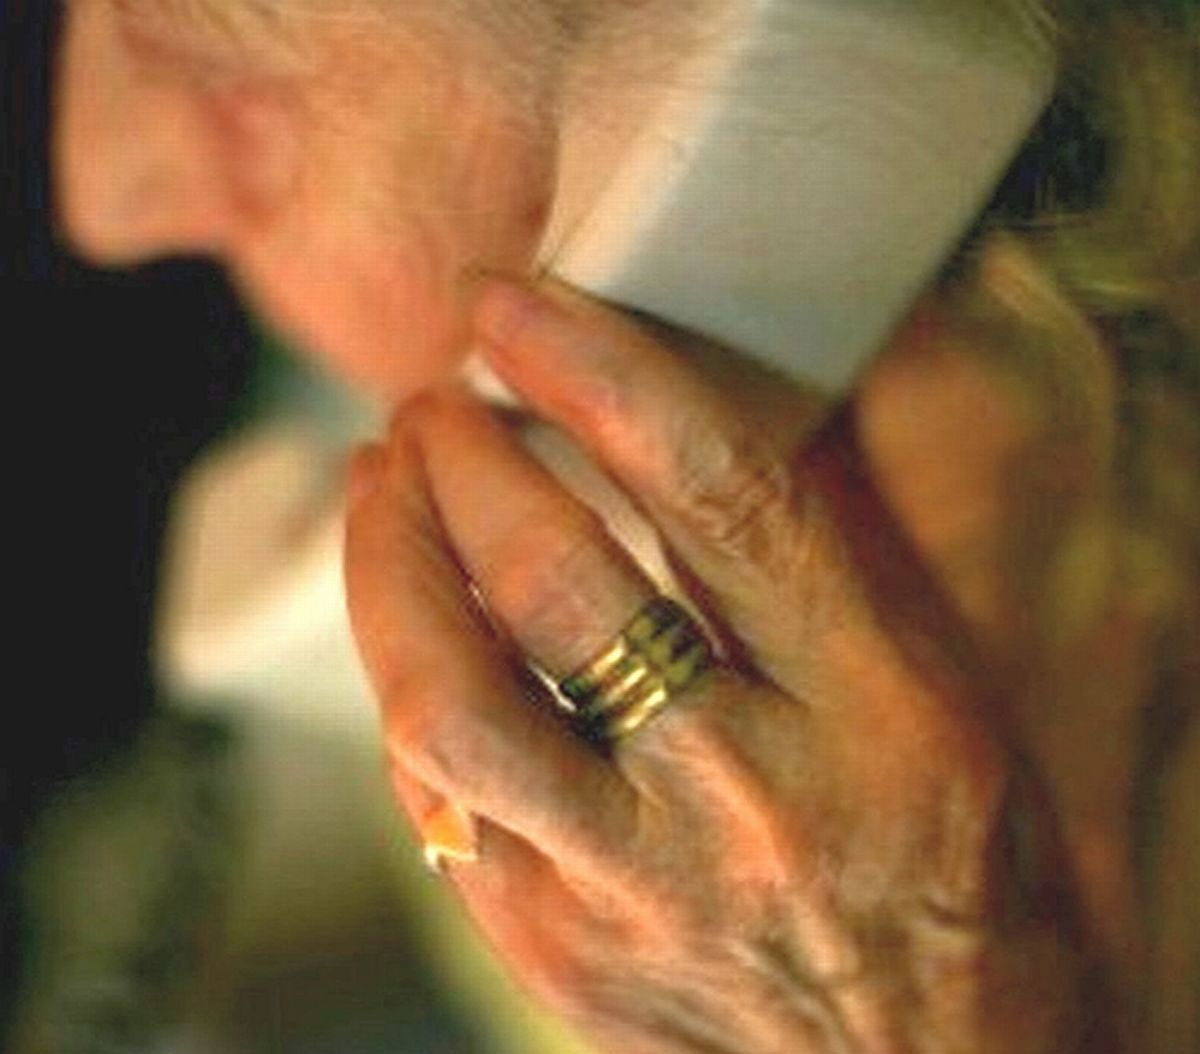 TAKE CARE: Fraudsters are targeting the elderly